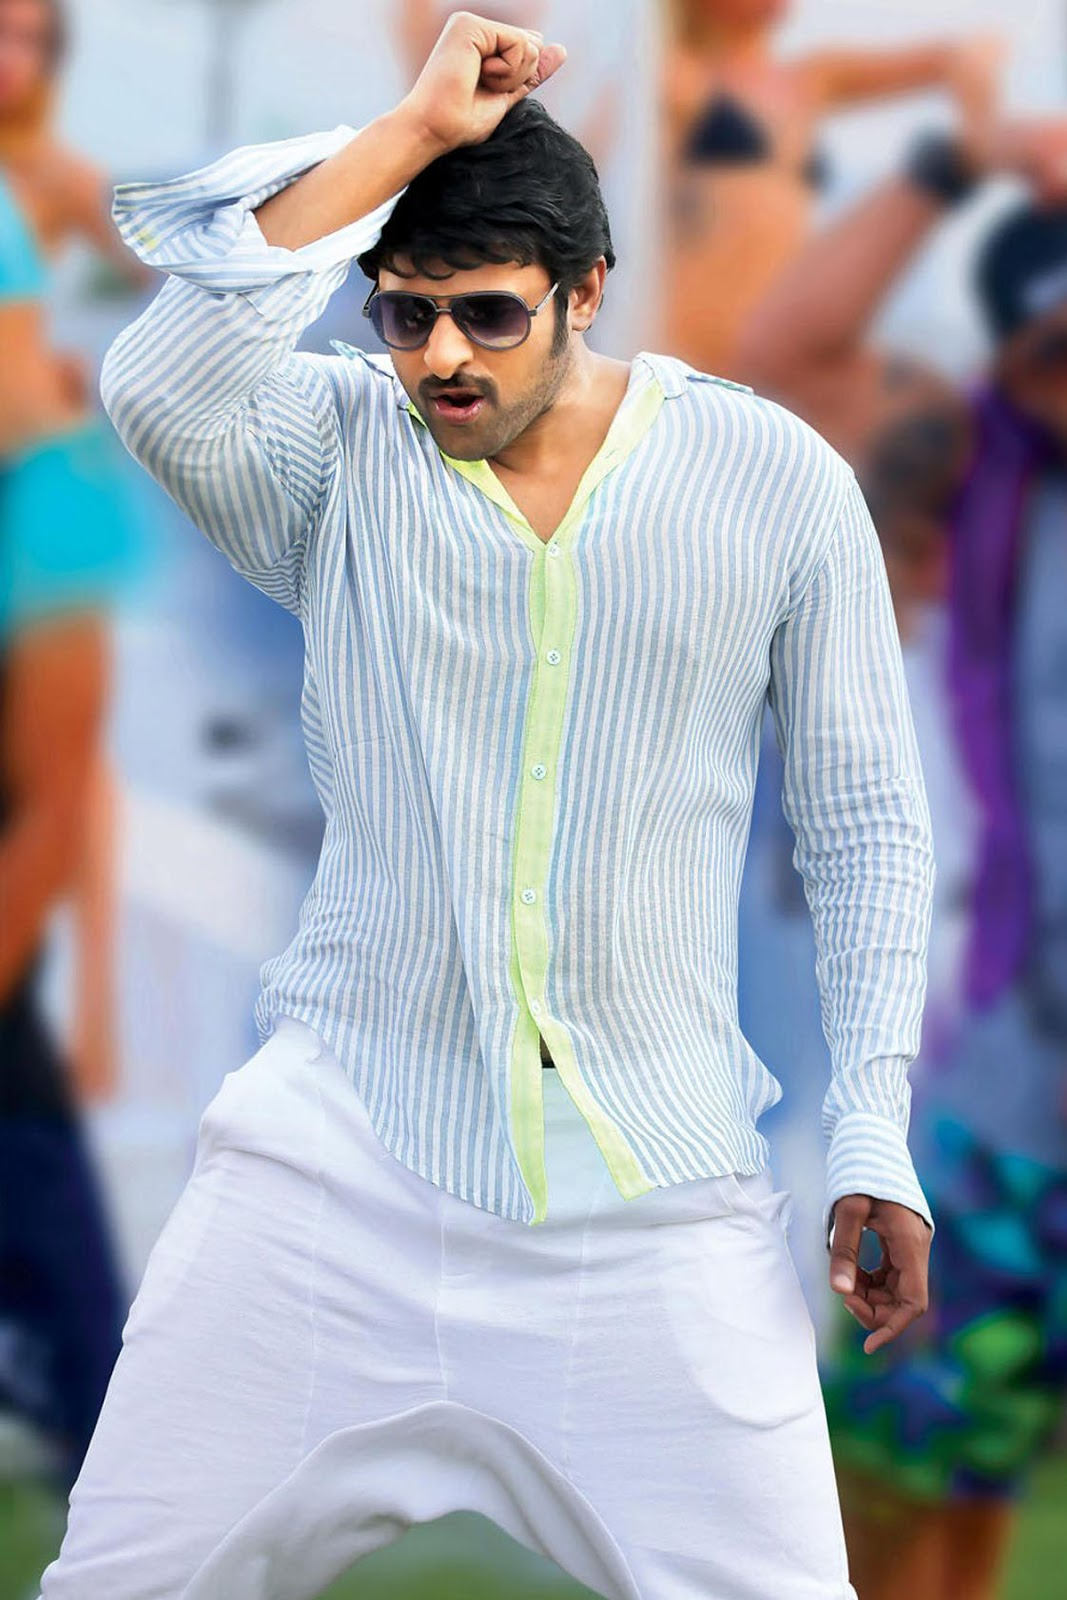 Prabhas HD Wallpapers | Download Free High Definition Desktop Backgrounds